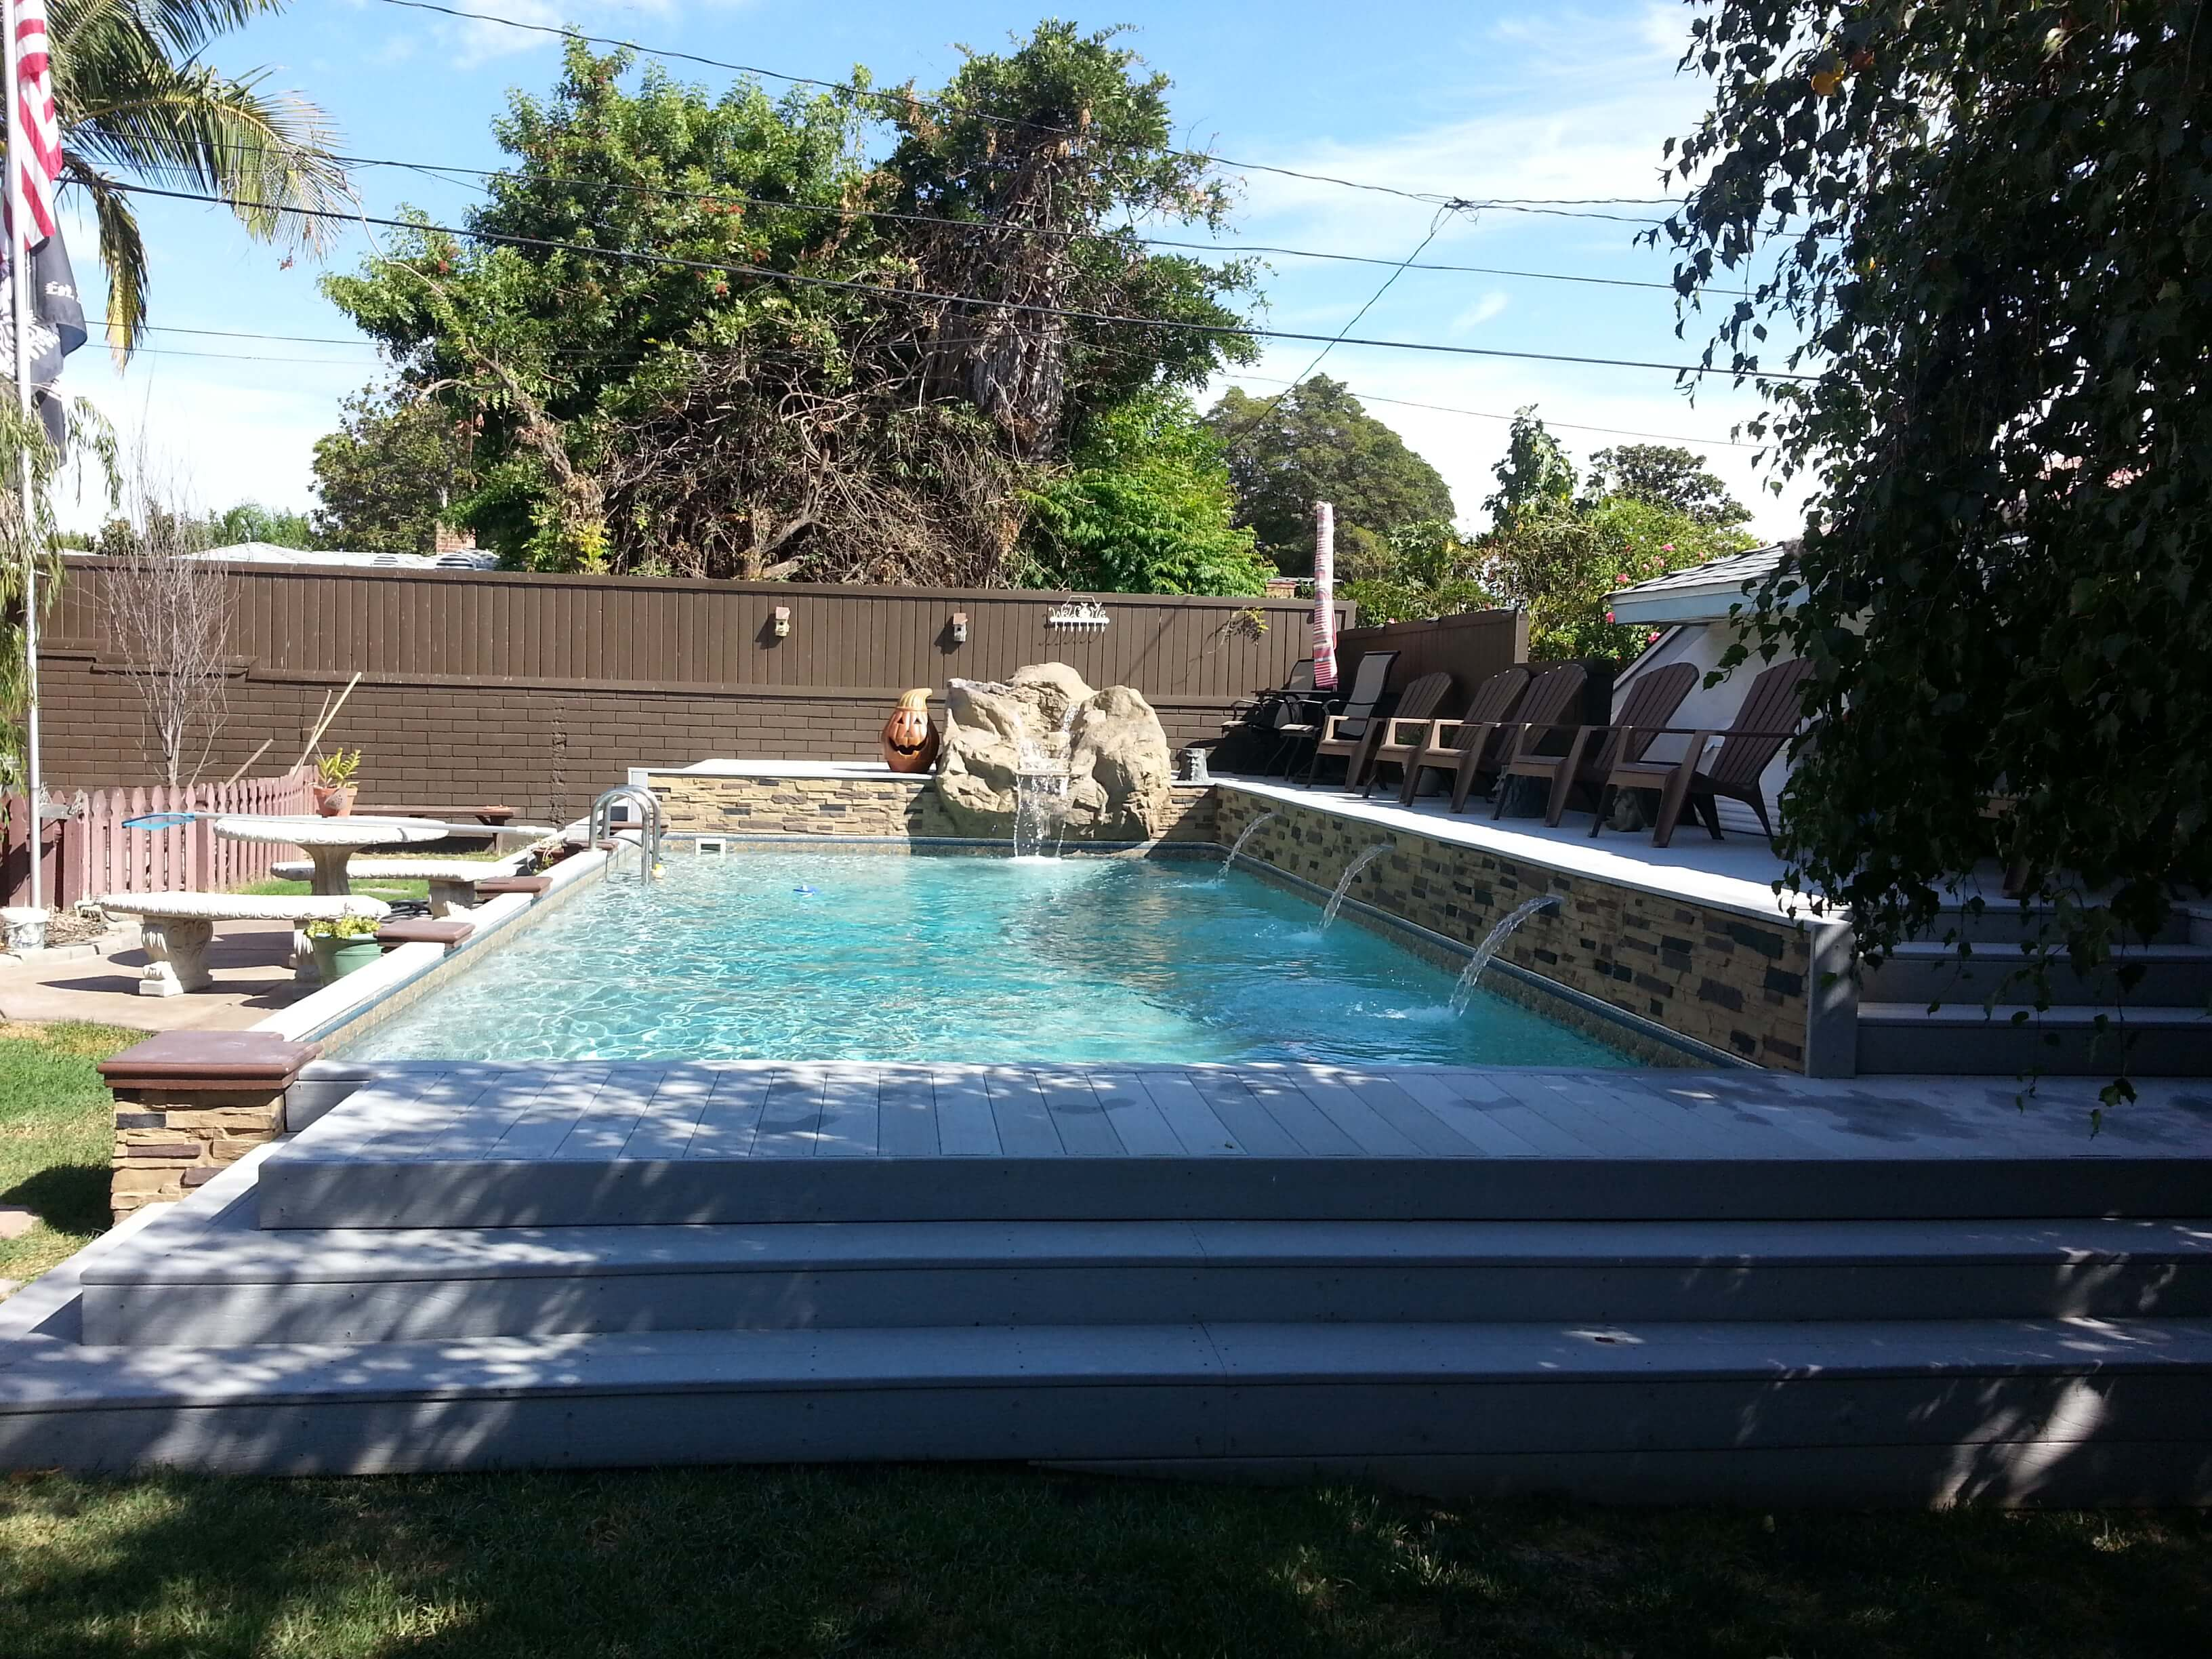 Pool Garten Winter Islander Inground Pools Secard Pools Spas